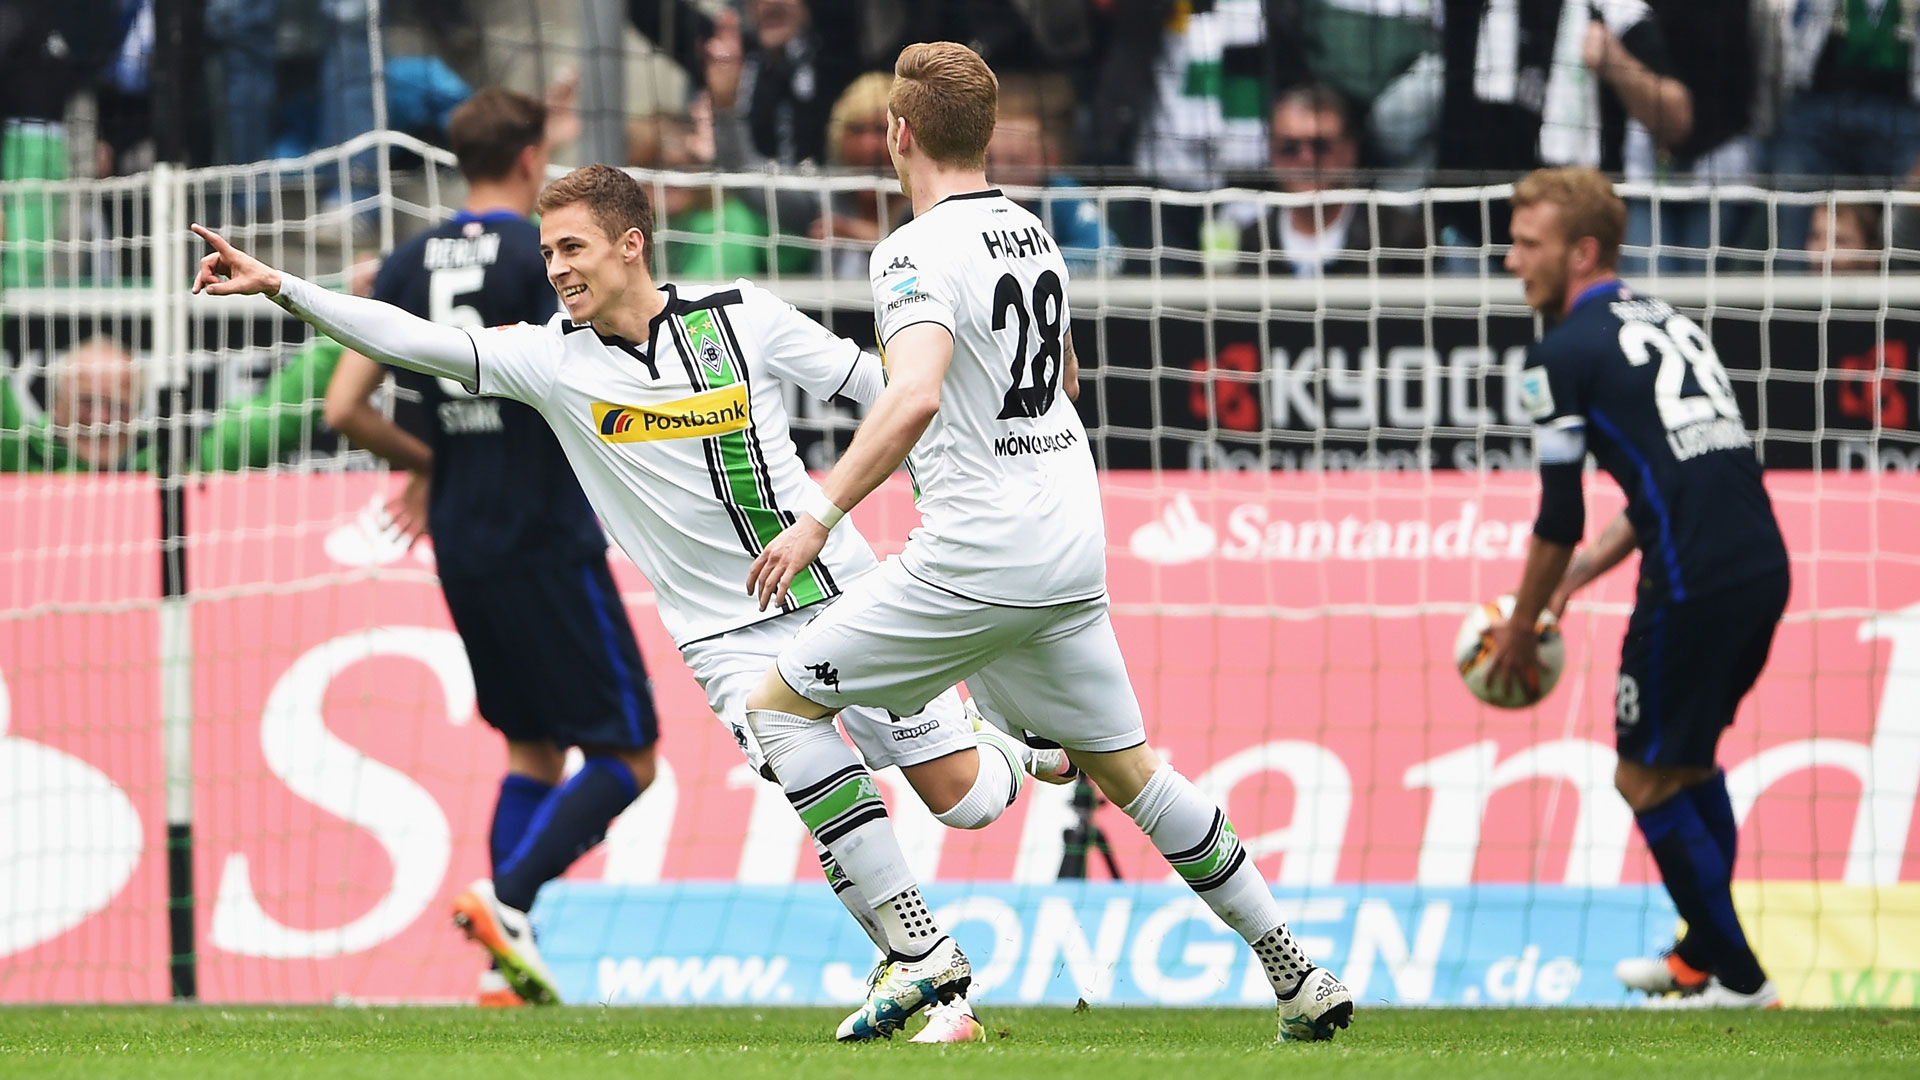 Video: Borussia M gladbach vs Hertha BSC